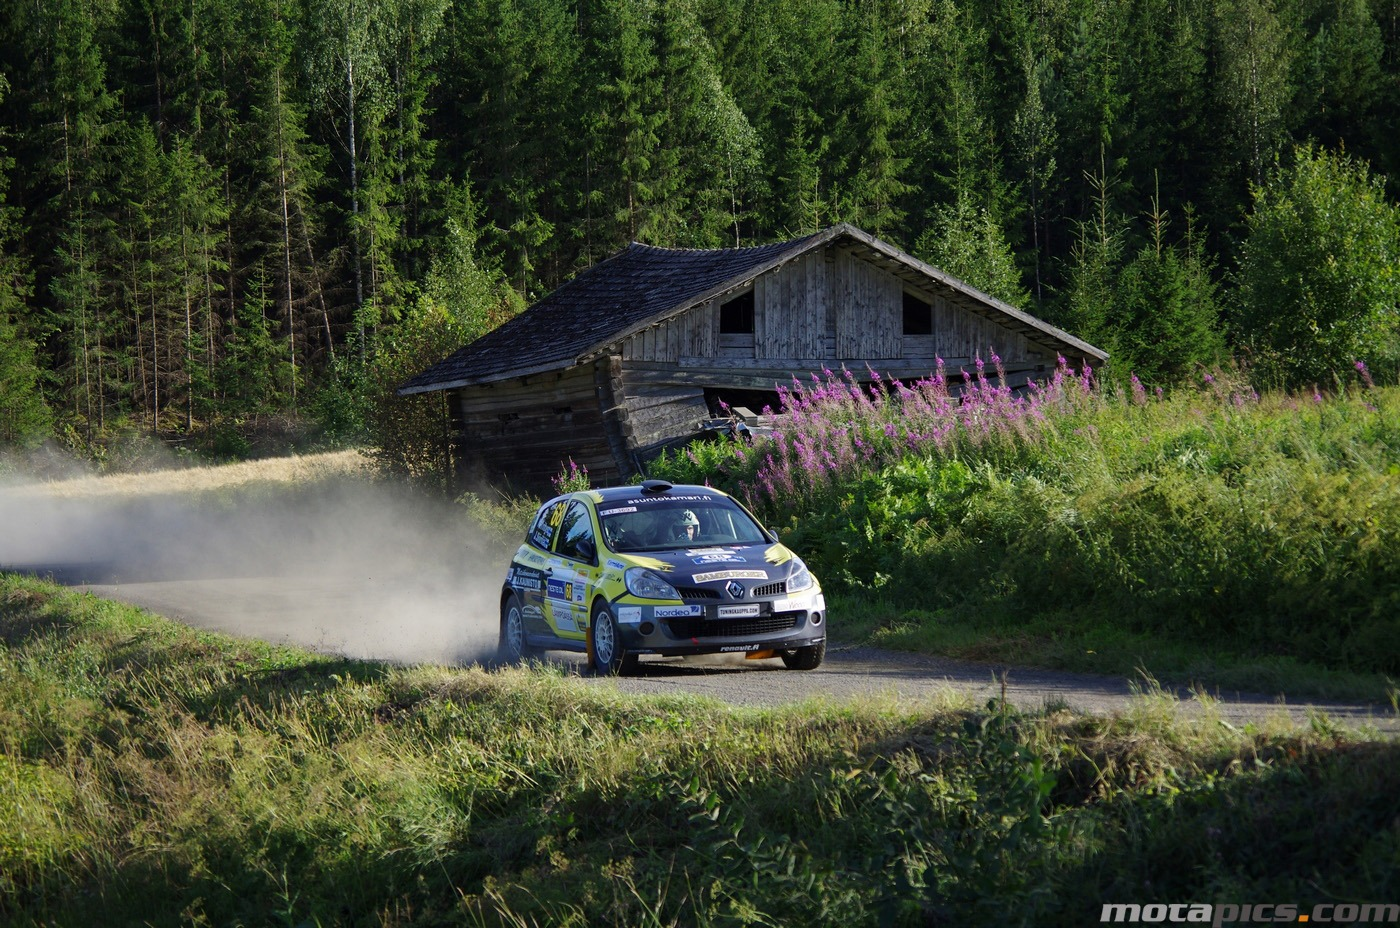 motapics-wallpaper-finland-rally1_1400px.jpg